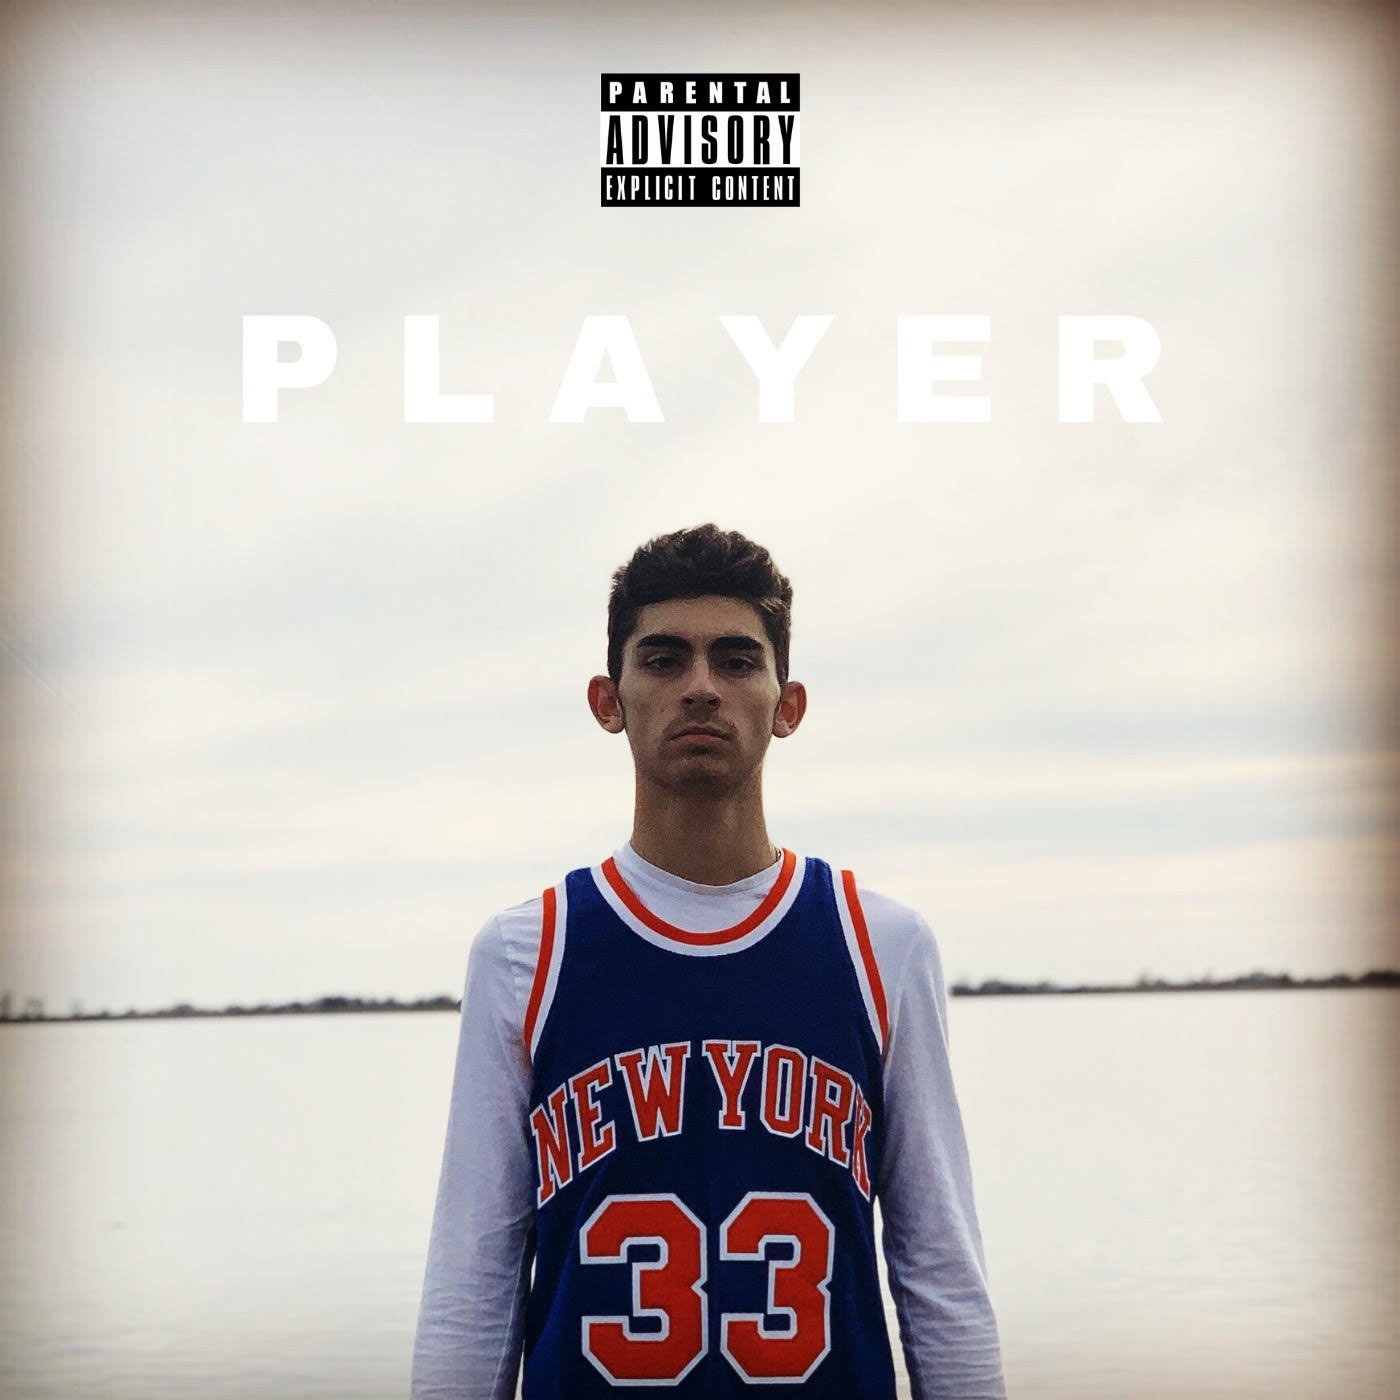 Jesse Eplan Drops Electrified Second EP 'Player'